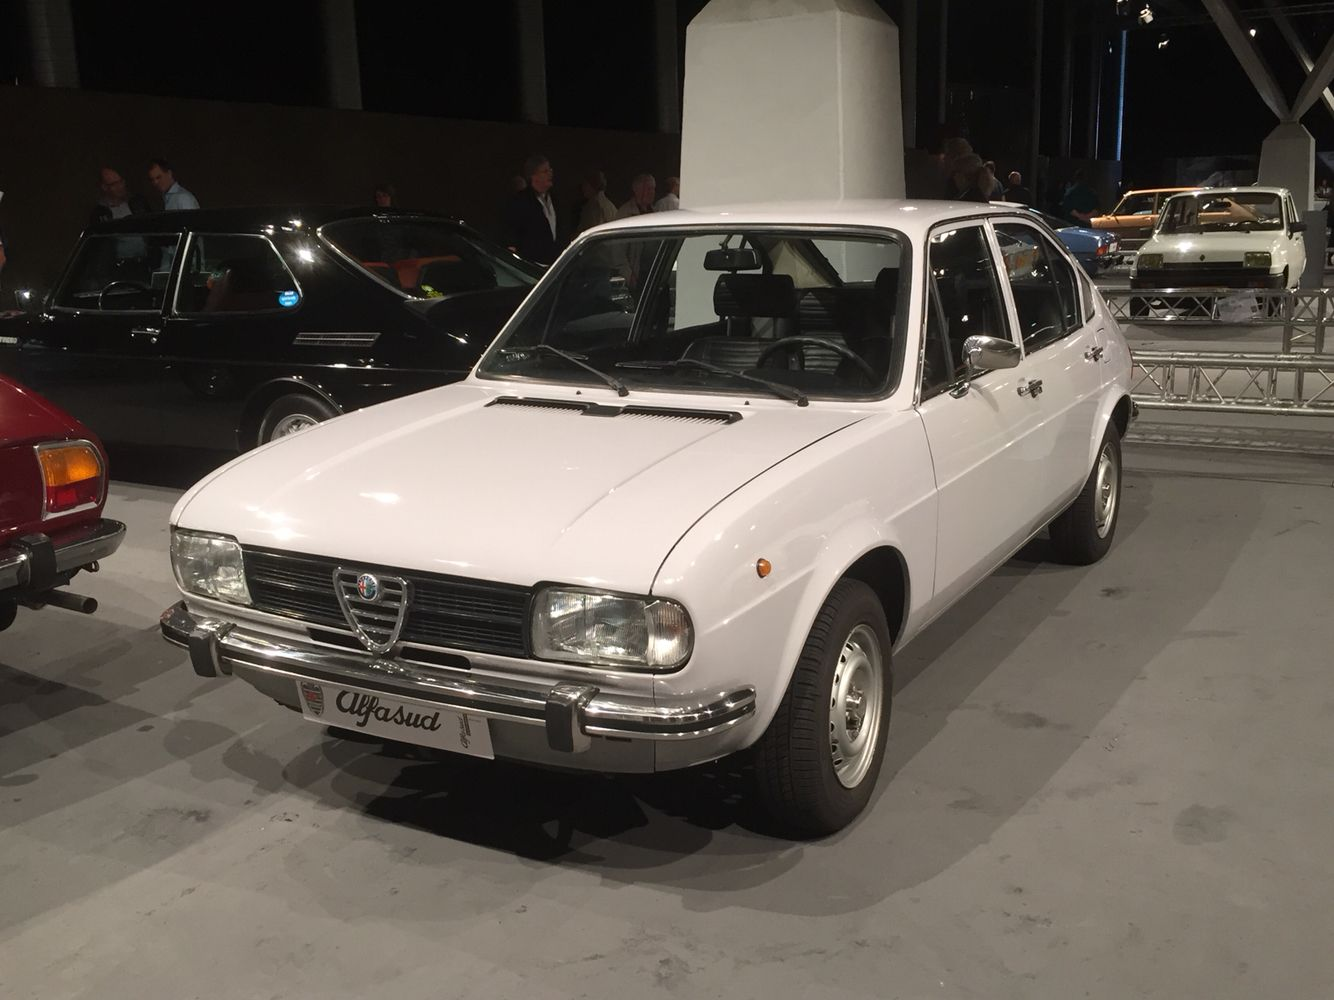 Alfa Sud This was my first experience with Alfa. My Dad